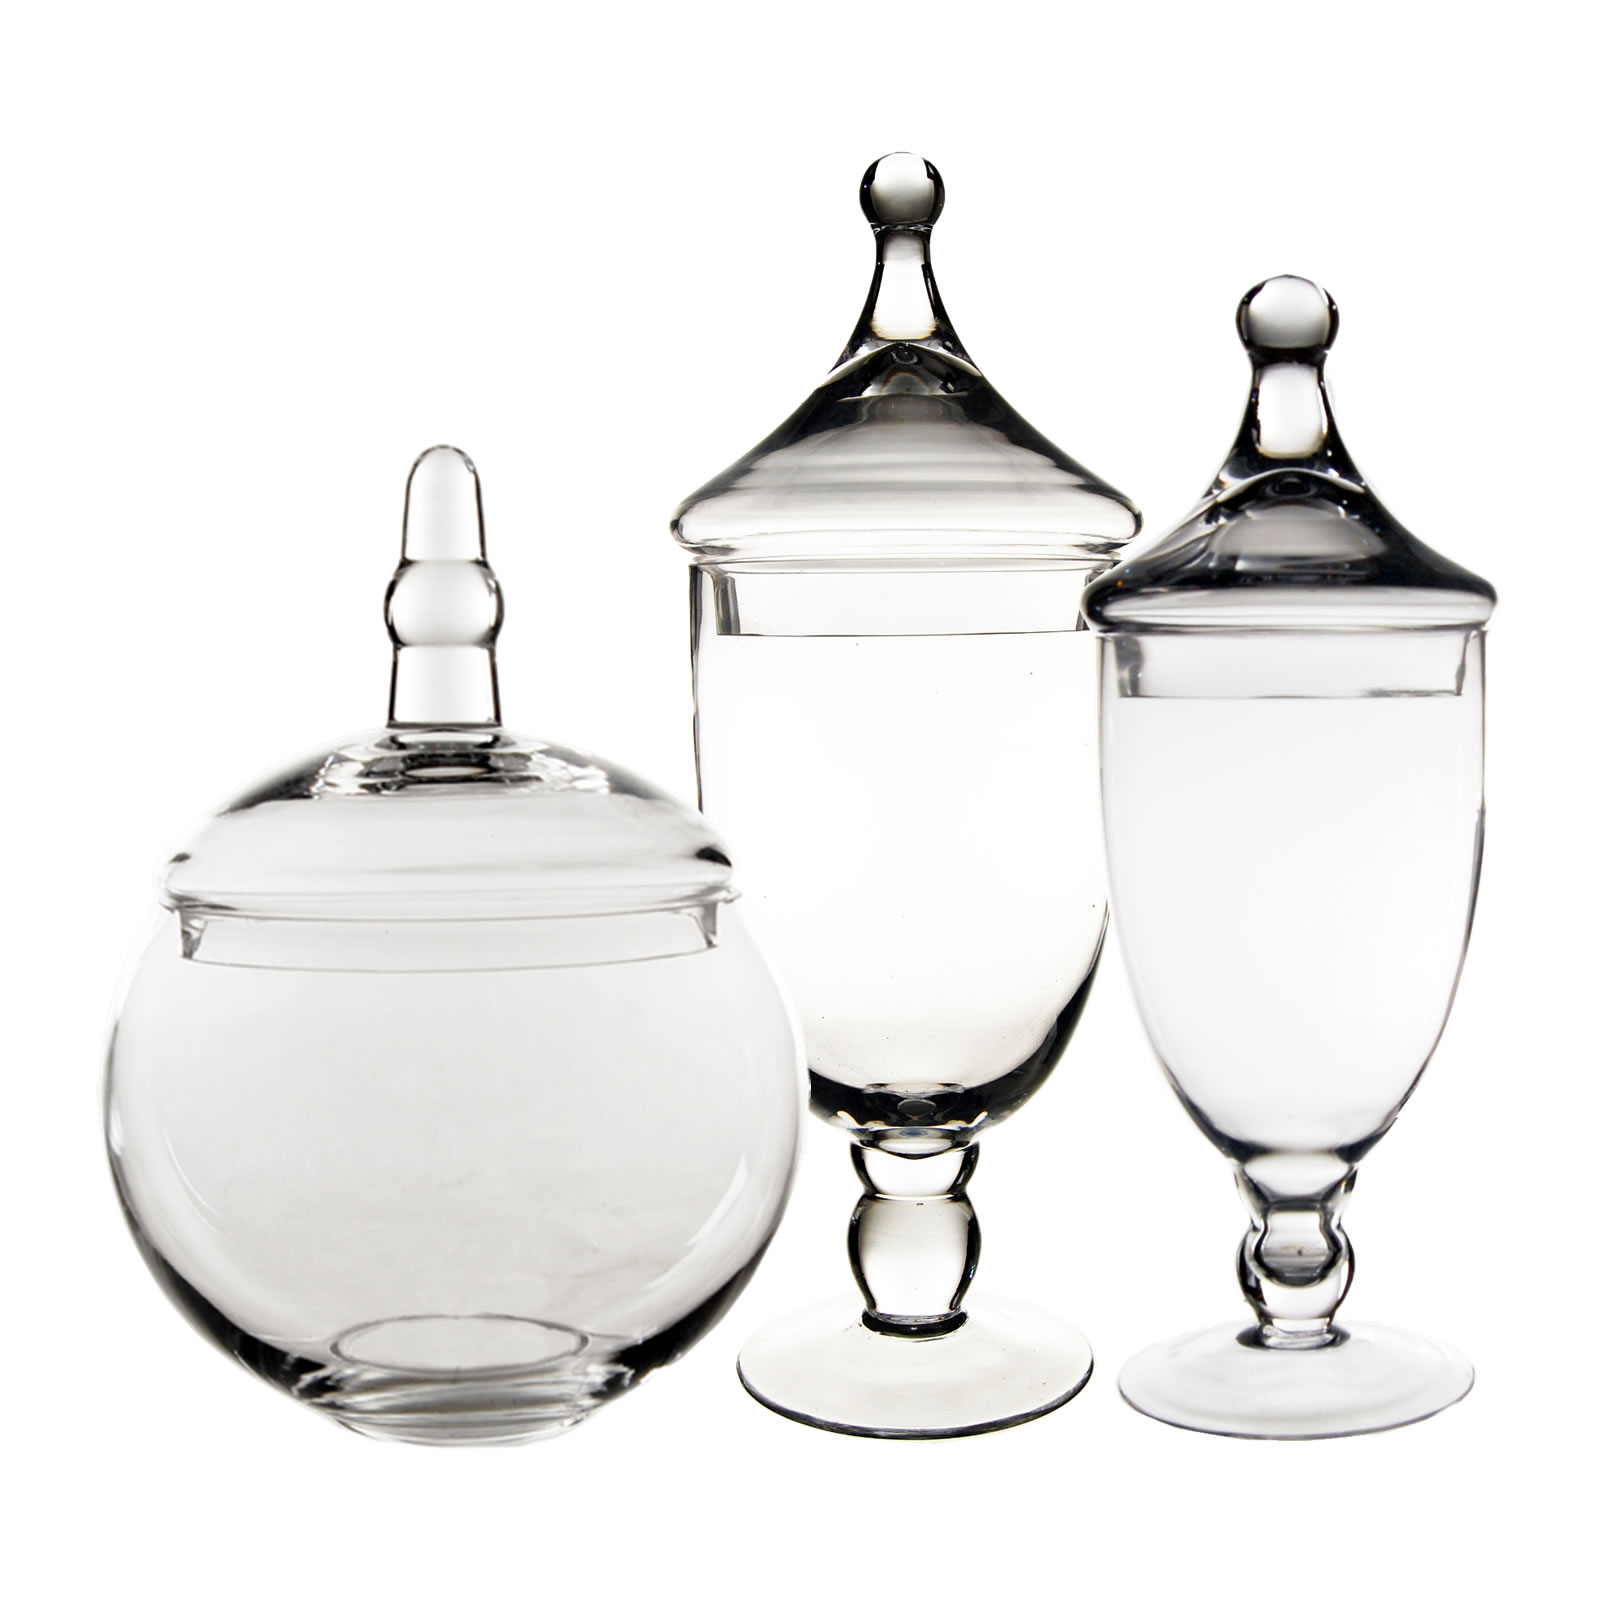 "Glass Apothecary Jars Set of 3, H-13.5"", 16.5"", 10"""